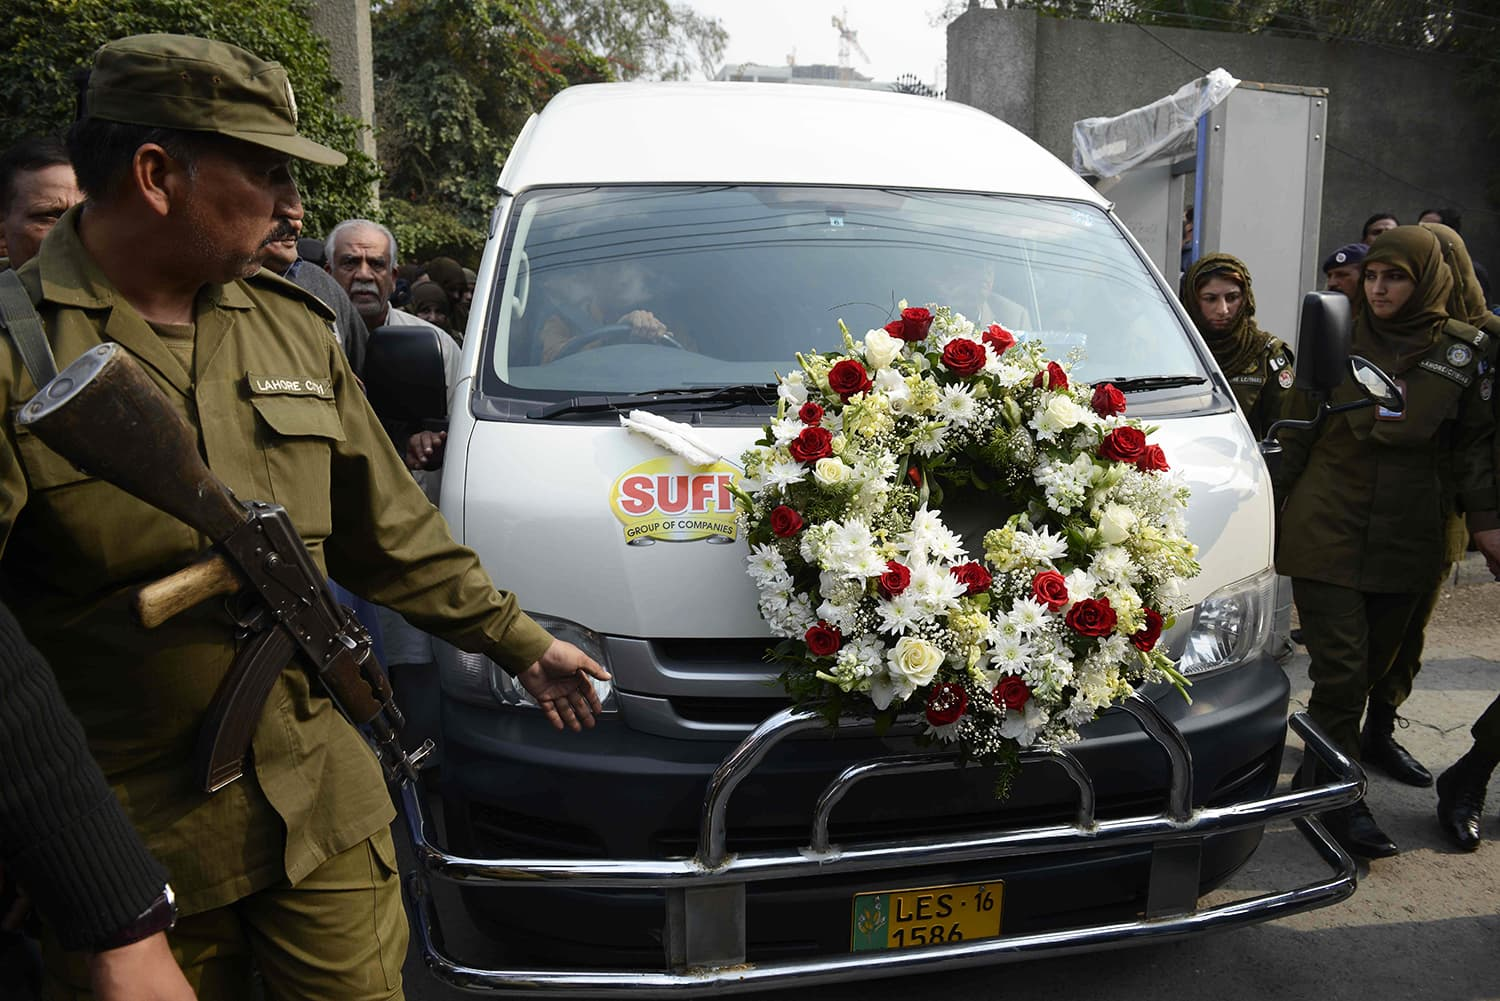 Policemen escort a vehicle carrying the coffin of lawyer and rights advocate Asma Jahangir during her funeral in Lahore on February 13. — AFP